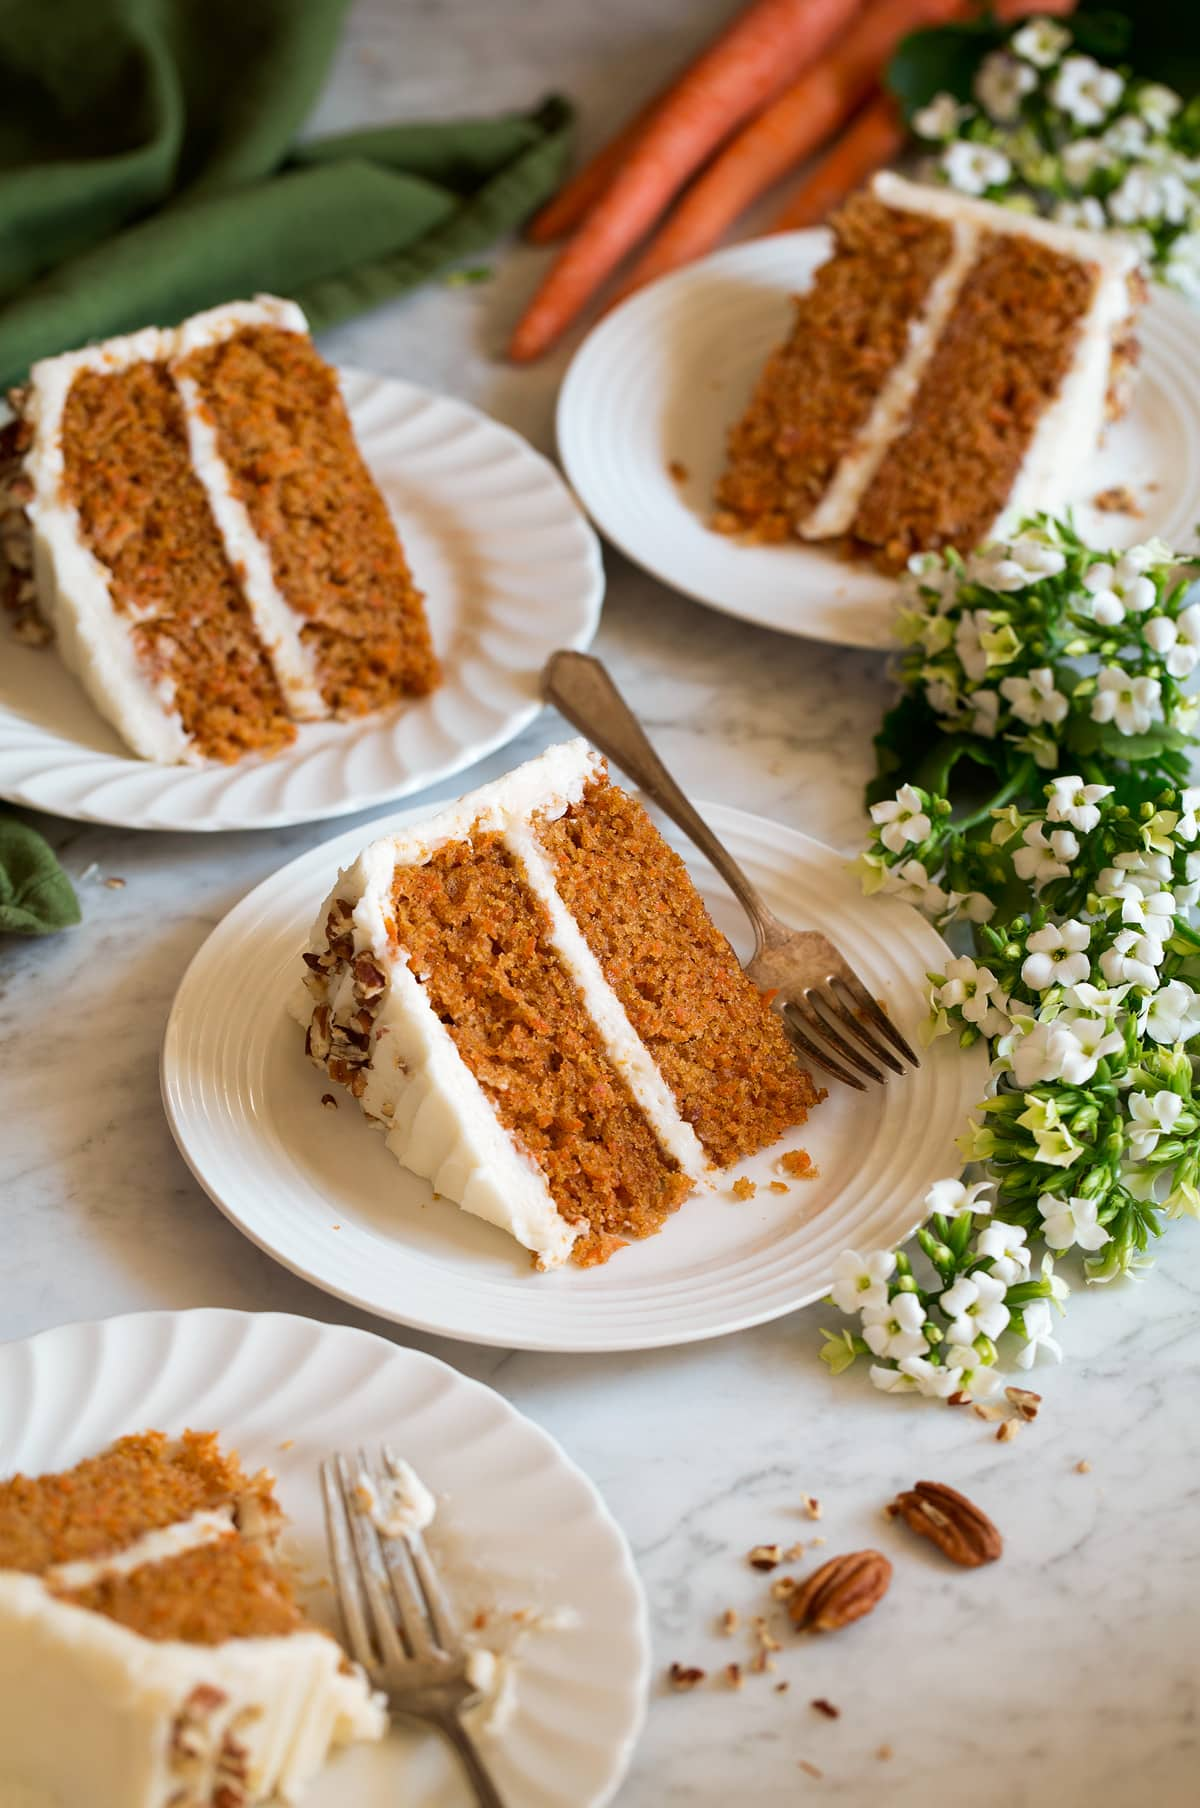 Four slices of carrot cake shown on white scalloped dessert plates with flowers and carrots around plates.